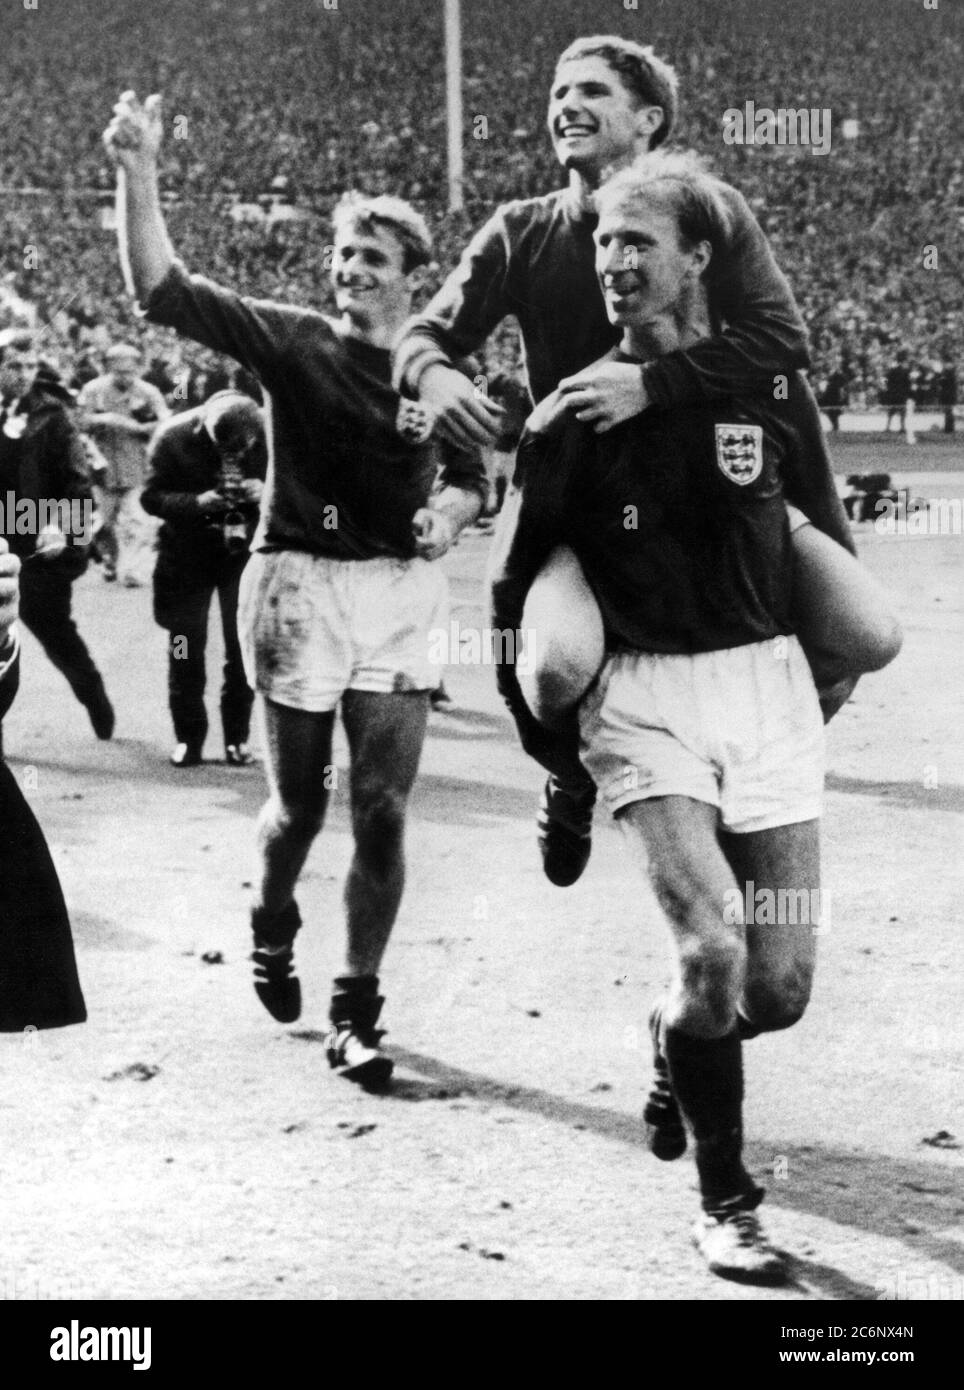 30 July 1966 Wembley Stadium, England. 1966 World Cup Final, Germany versus England.Jack Charlton carries Alan Ball as Roger Hunt (l) follows up the rear after beating Germany 4-2 after extra time is played. Stock Photo